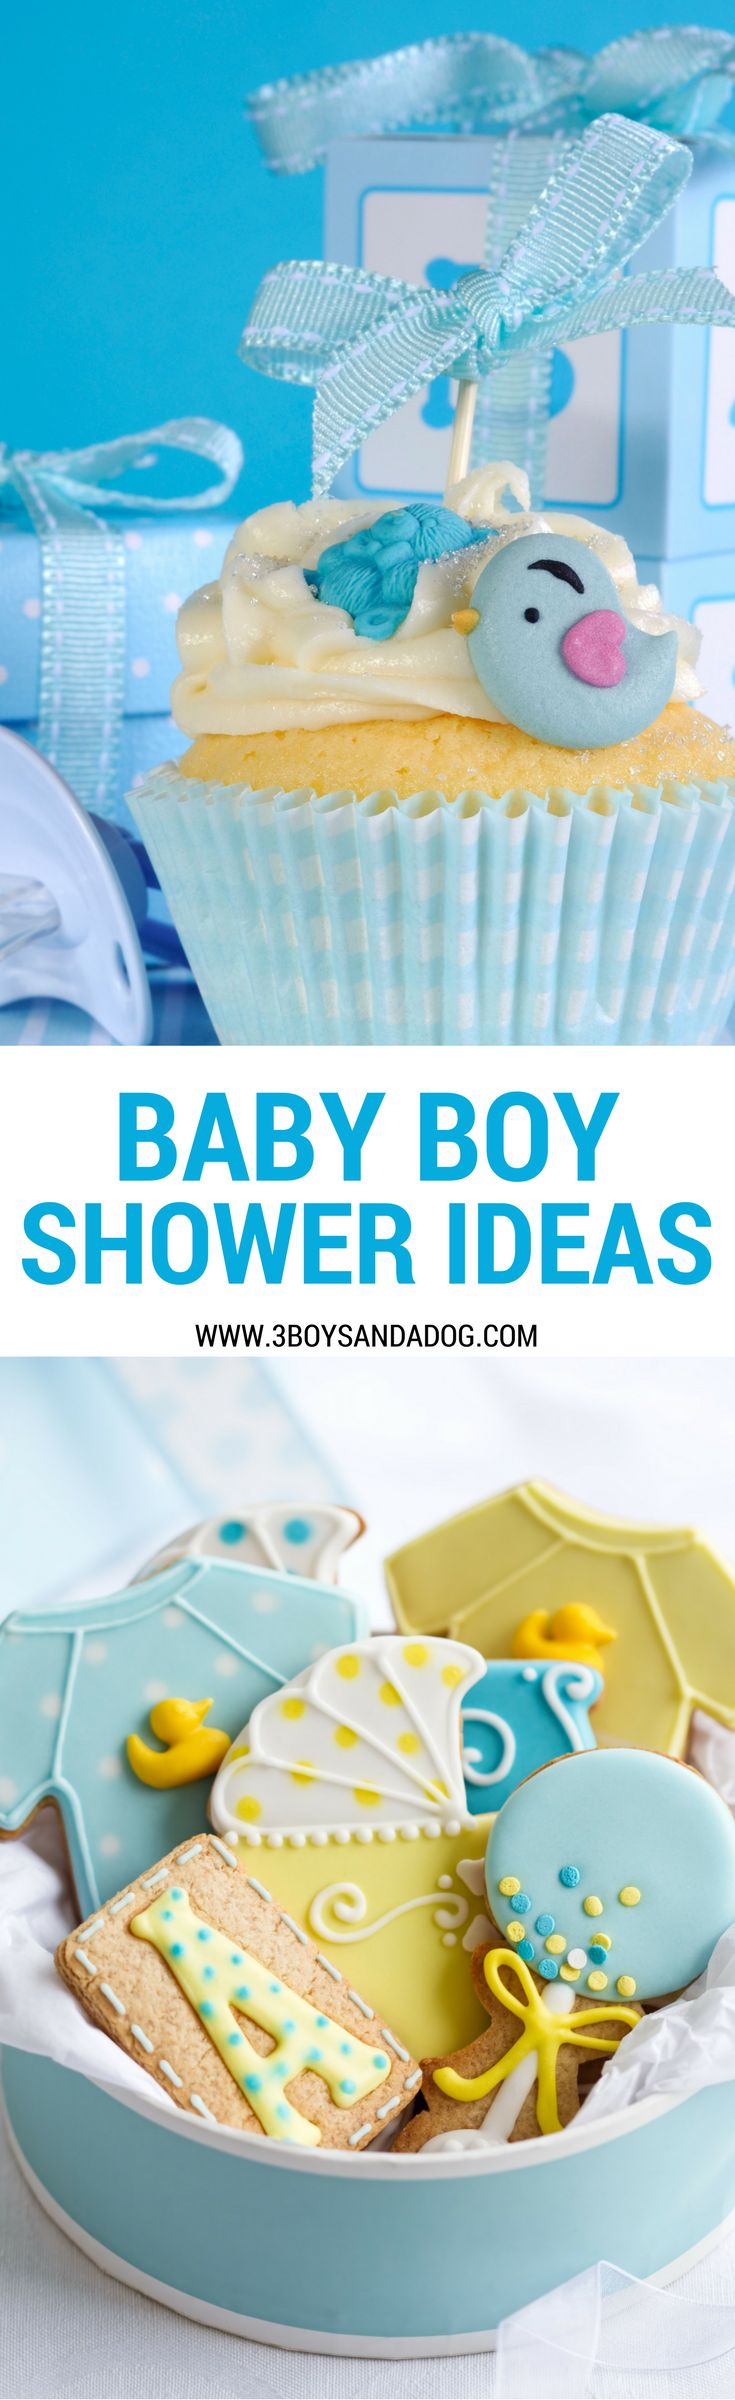 This huge list of baby shower ideas for boys is sure to help you plan and execute the  best ever baby boy shower!  #babyboy #babyshowerideas